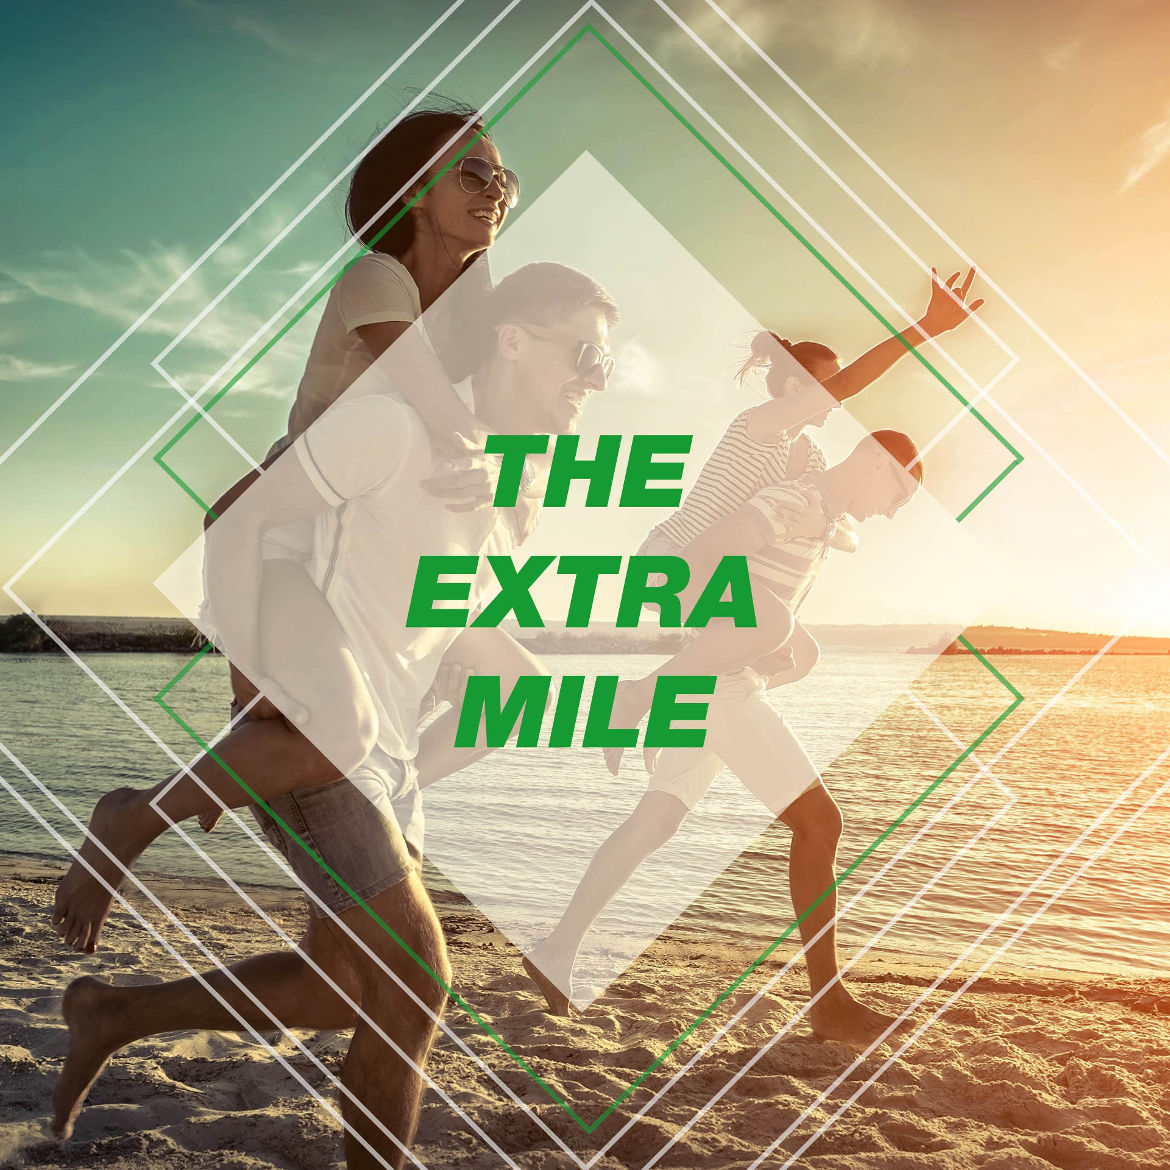 20180619 The Extra Mile Ohne Min